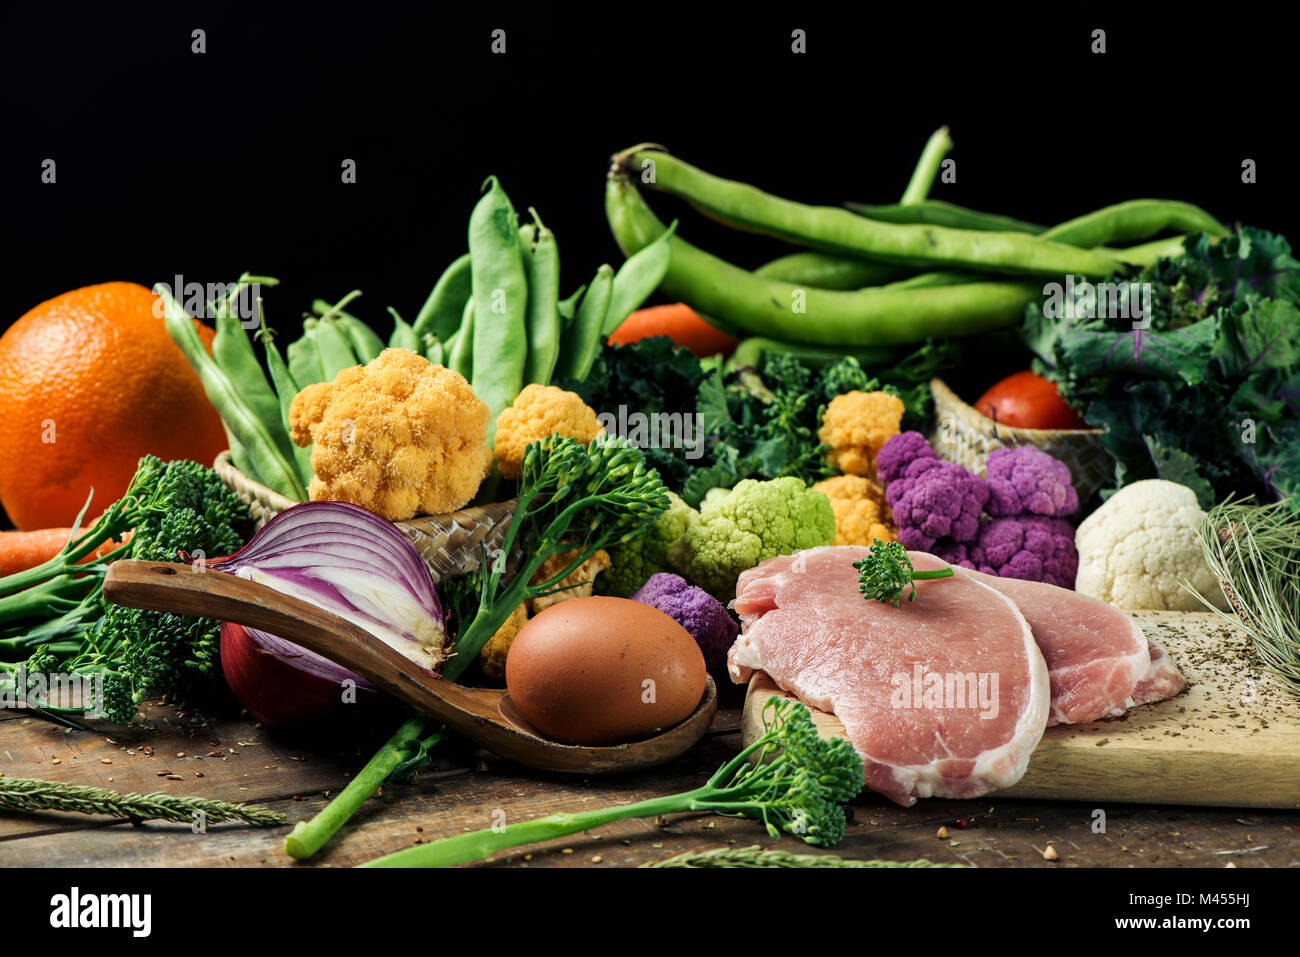 a pile of some fruit and some different raw vegetables, such as cauliflower of different colors, broccolini or french Stock Photo